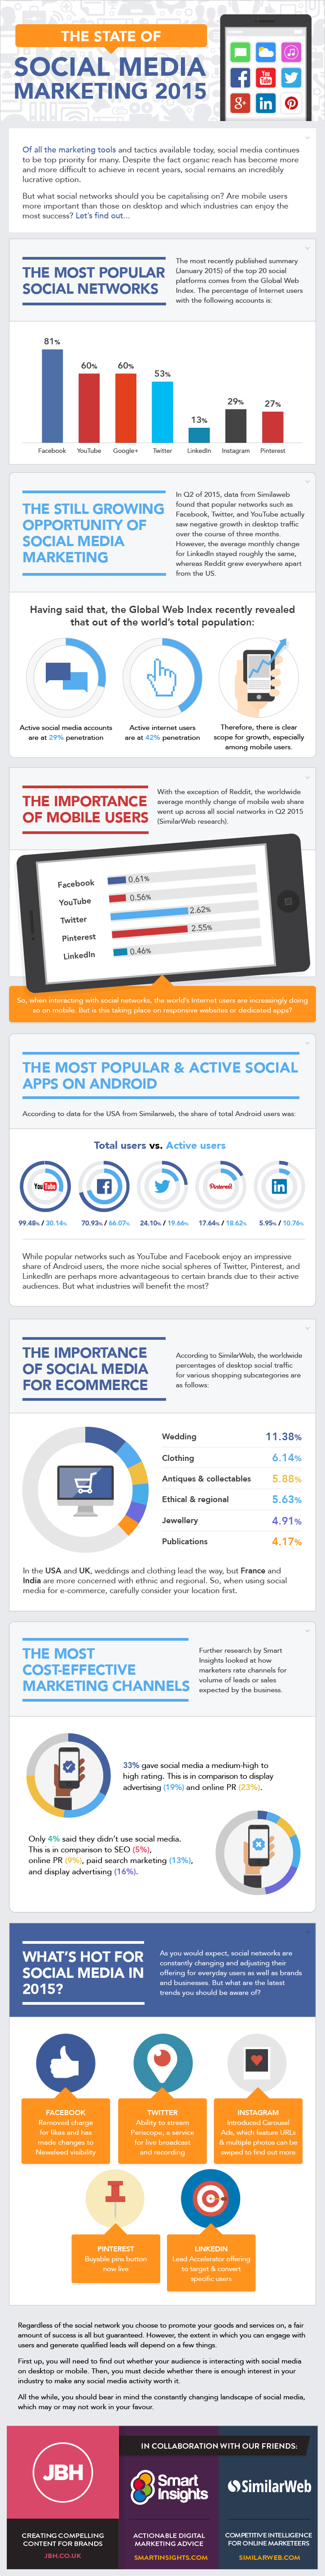 The State of Social Media Marketing 2015 #infographic